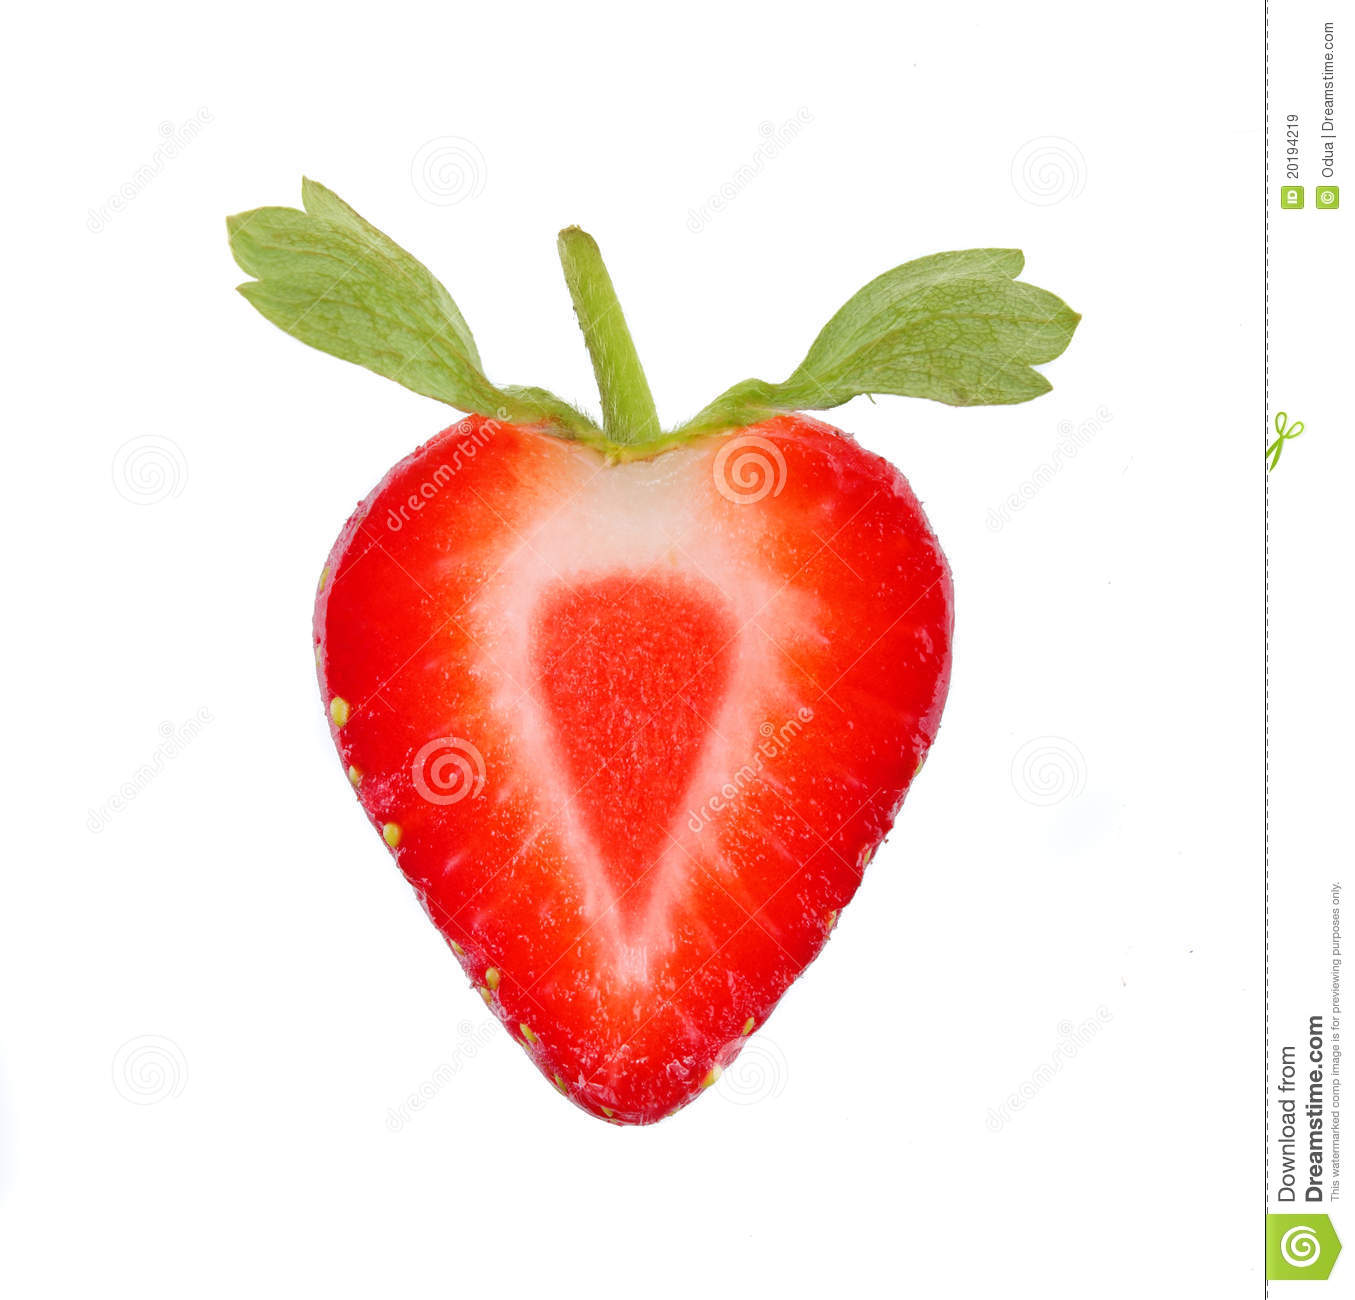 Strawberry Slice Royalty Free Stock Images - Image: 20194219